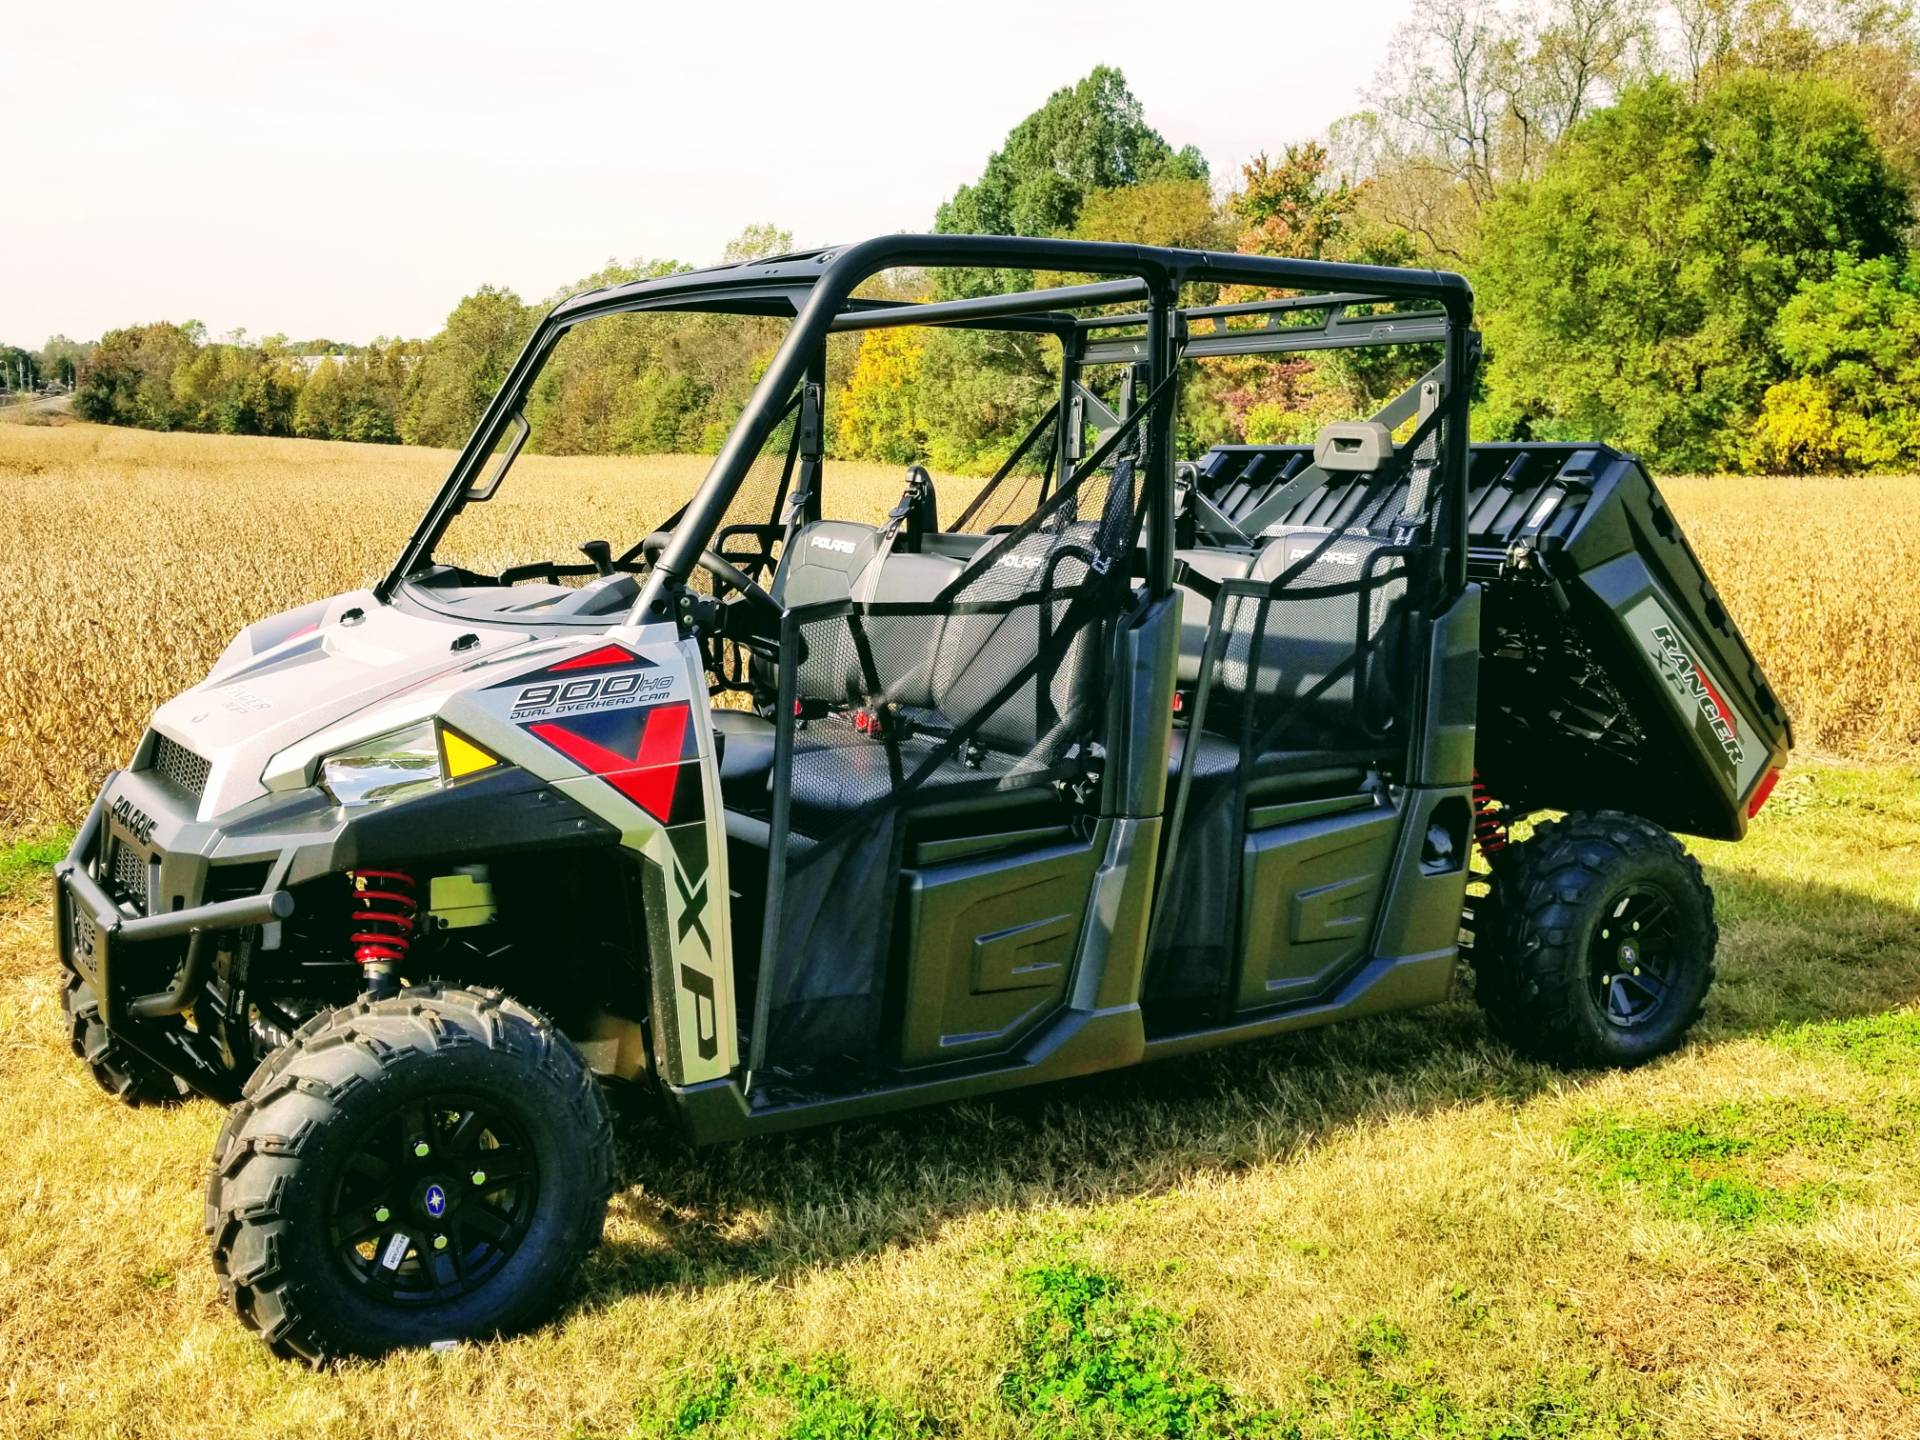 2019 Polaris Ranger Crew XP 900 EPS in Statesville, North Carolina - Photo 12